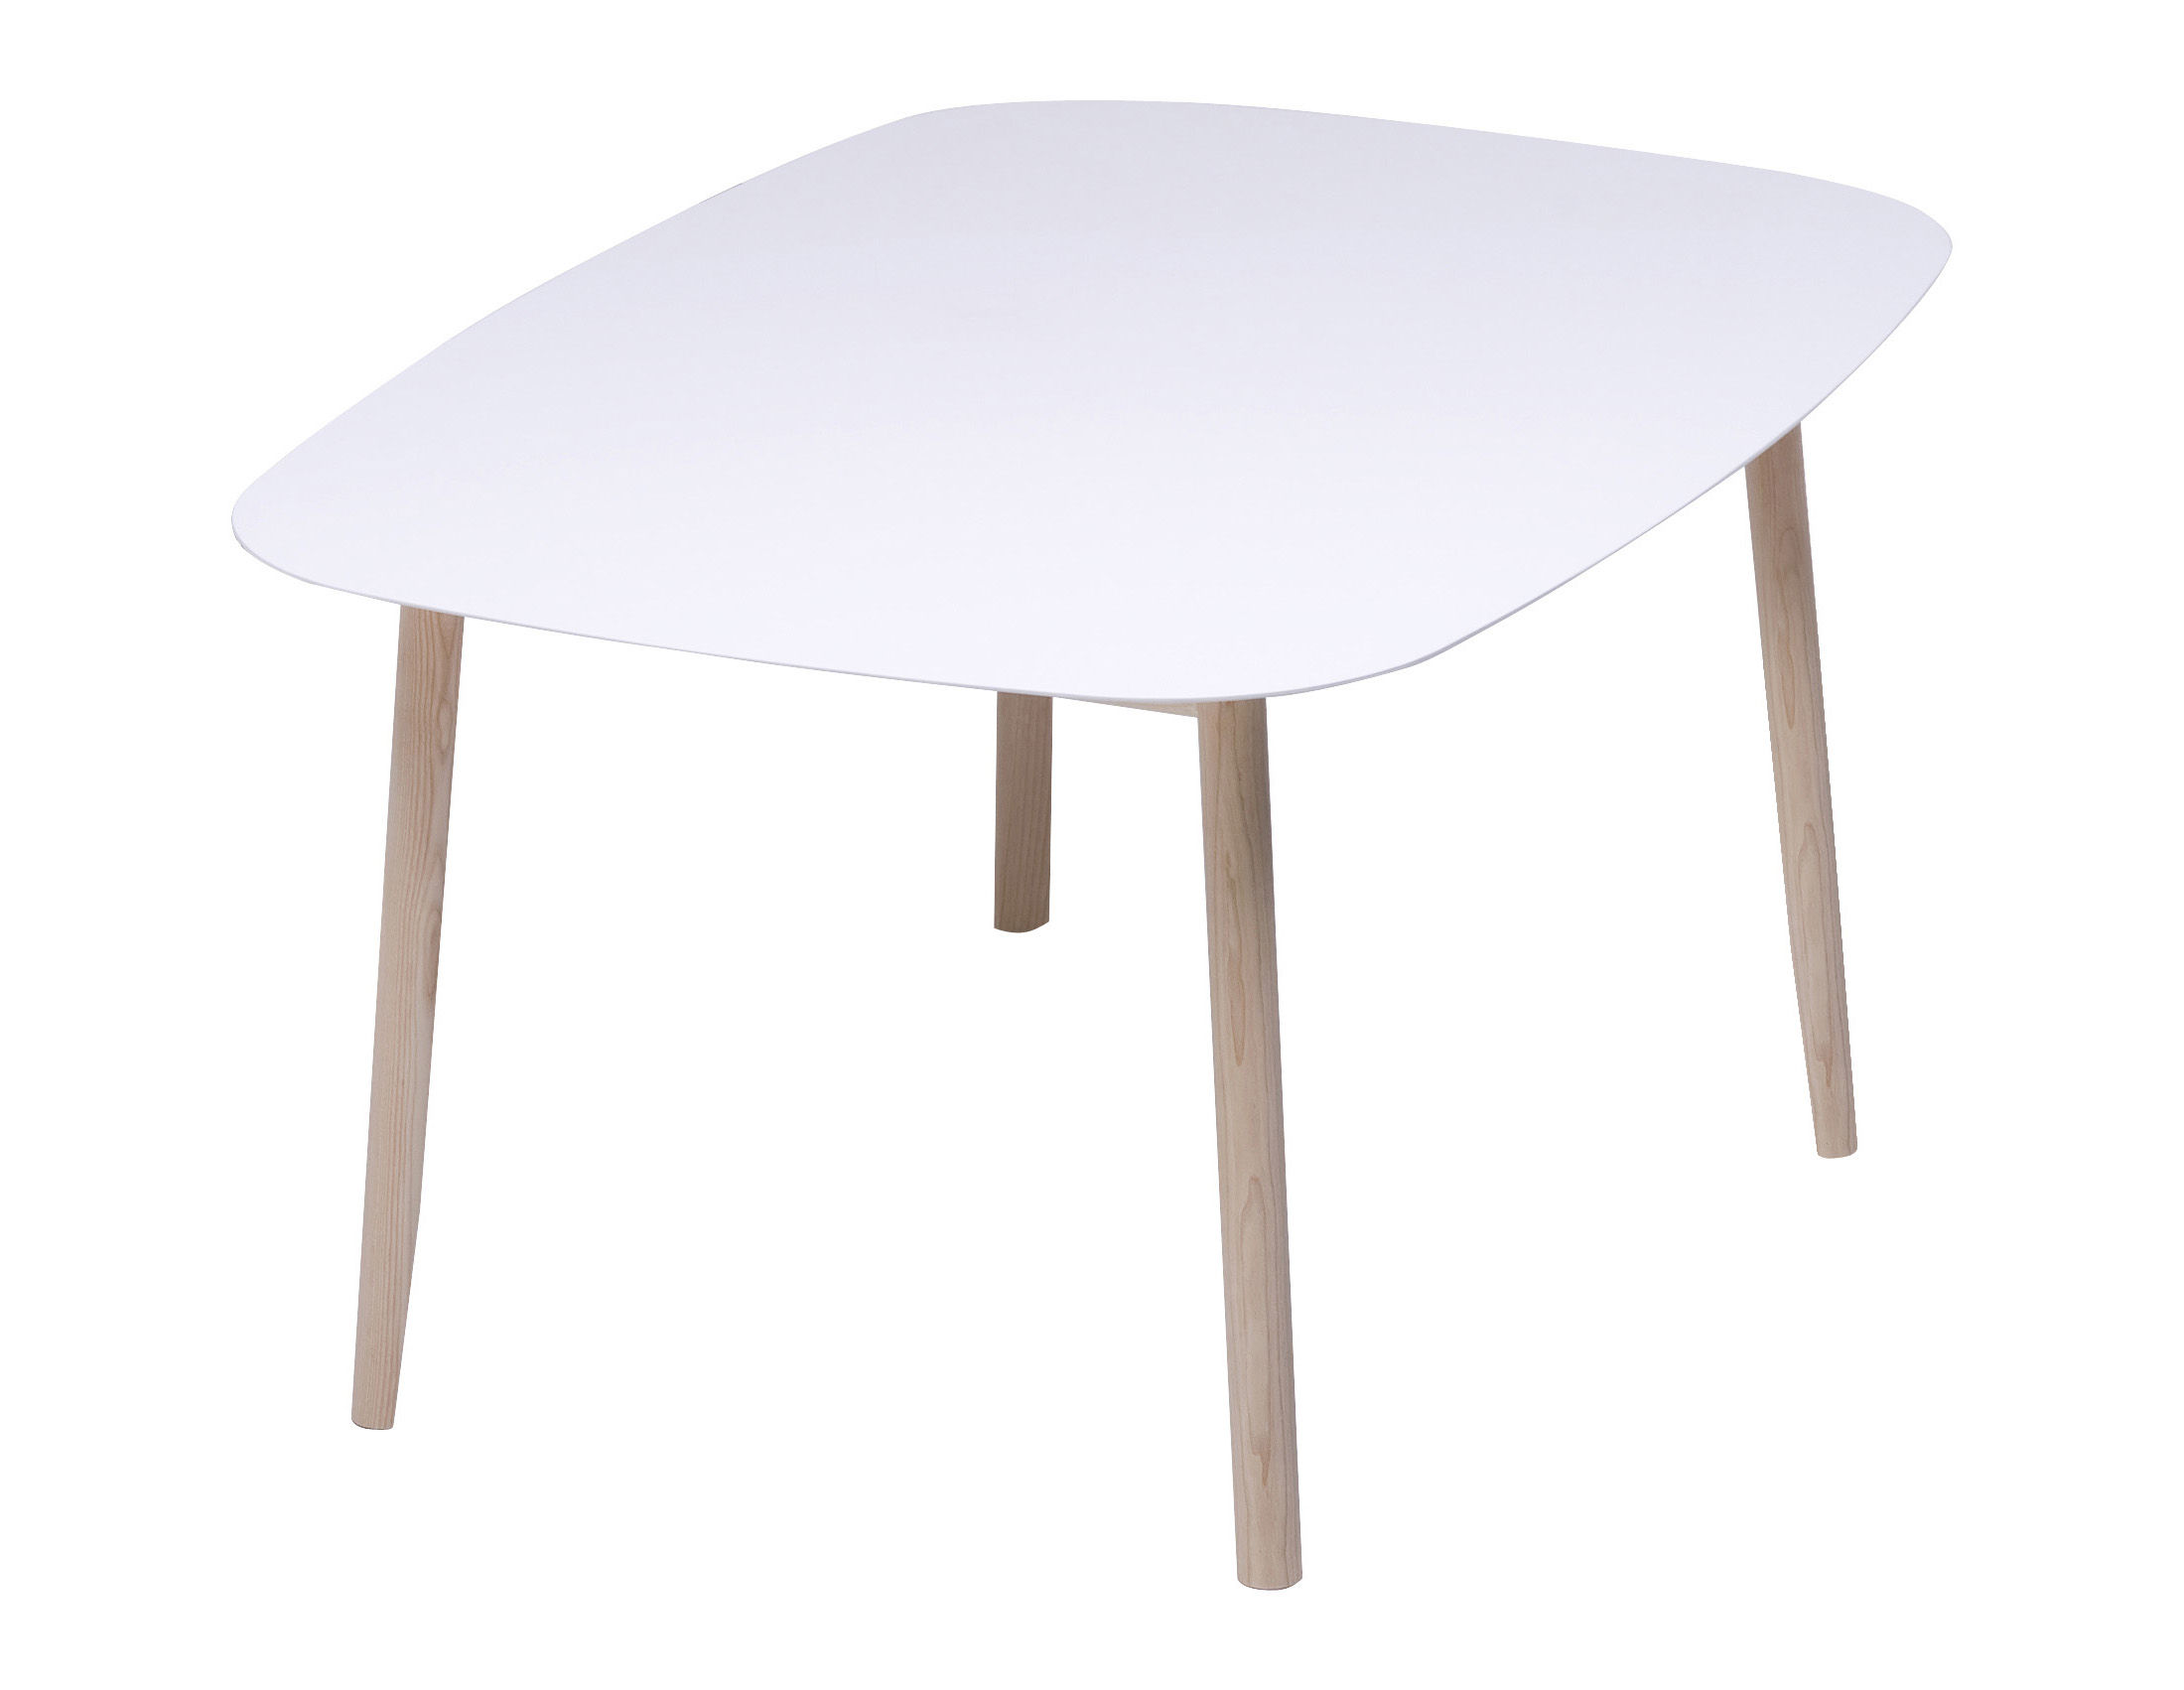 Furniture - Dining Tables - Branca Rectangular table - 110 x 150 cm by Mattiazzi - 110 x 150 cm - White lacquered - Ashwood, Lacquered MDF